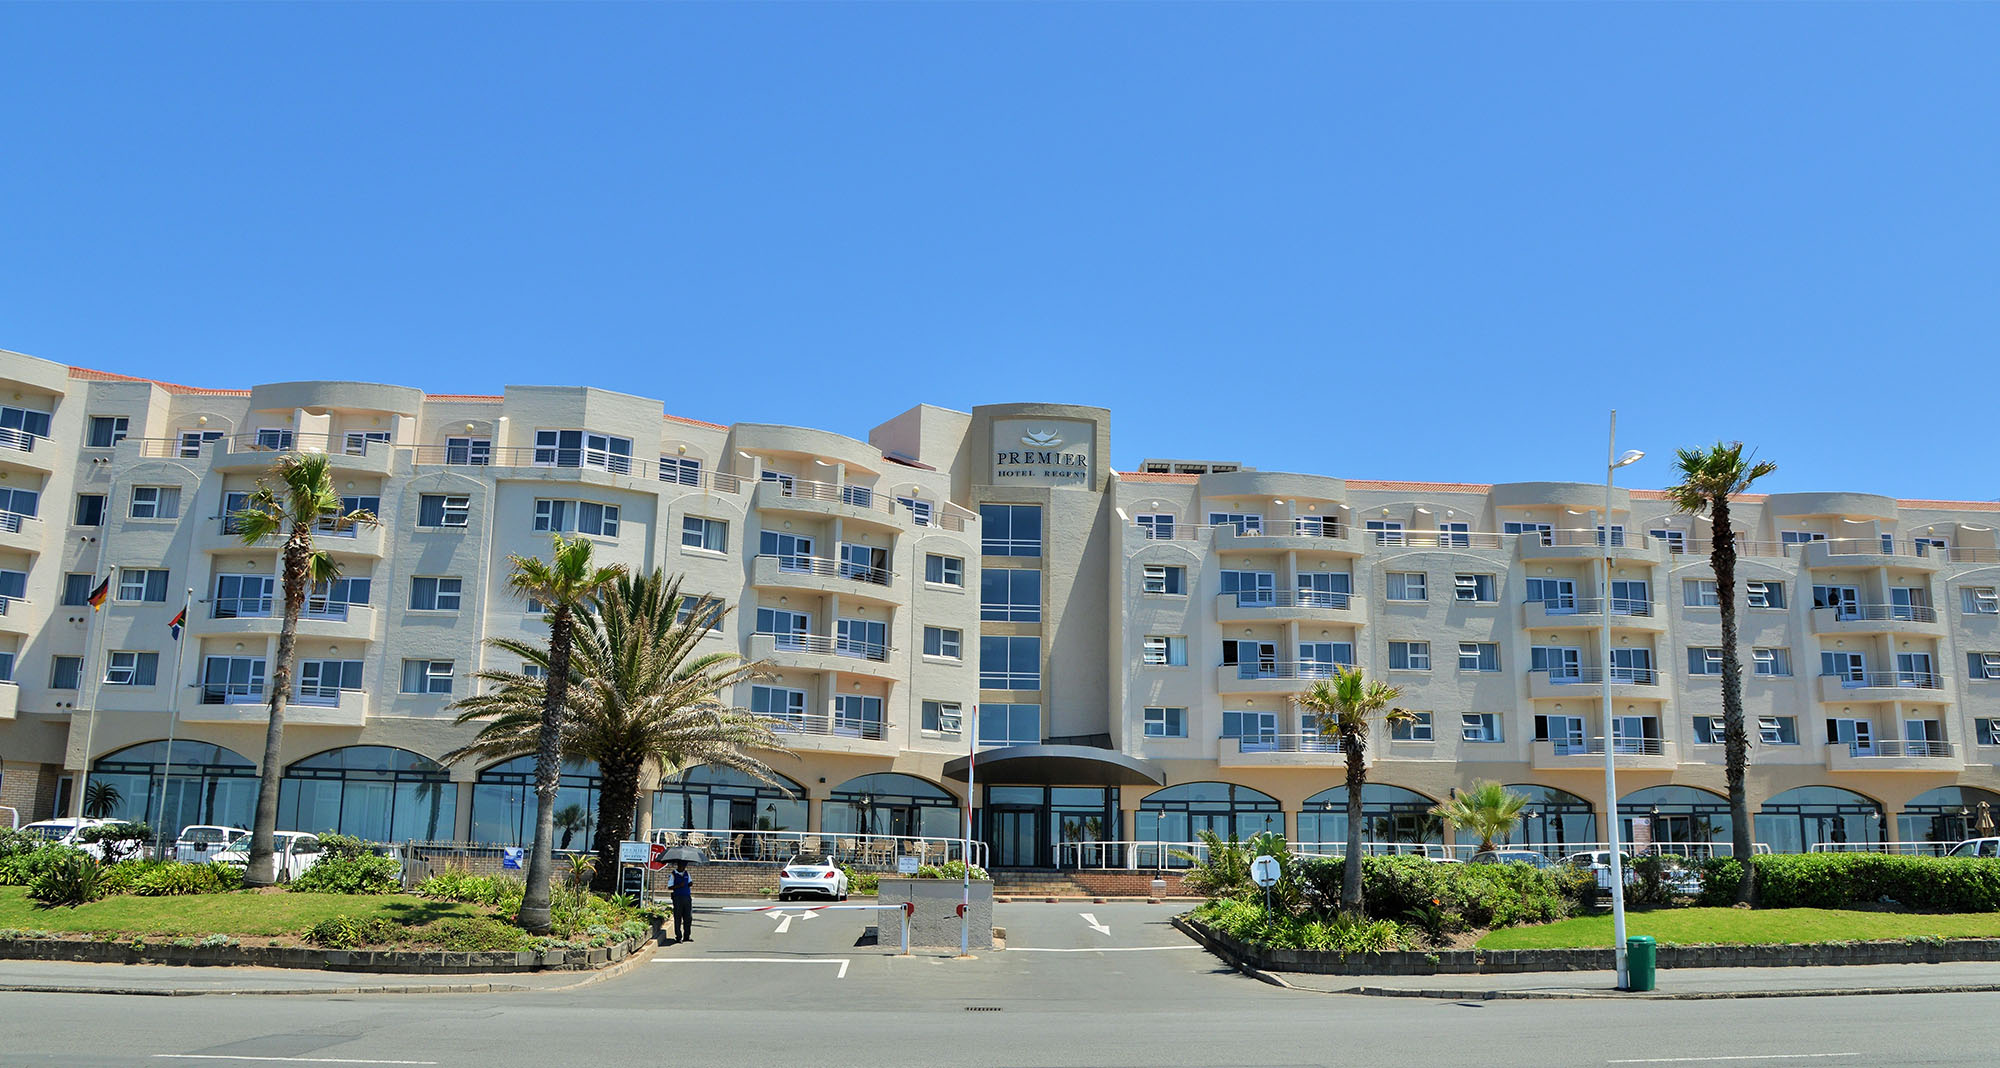 Beach Hotels In East London South Africa